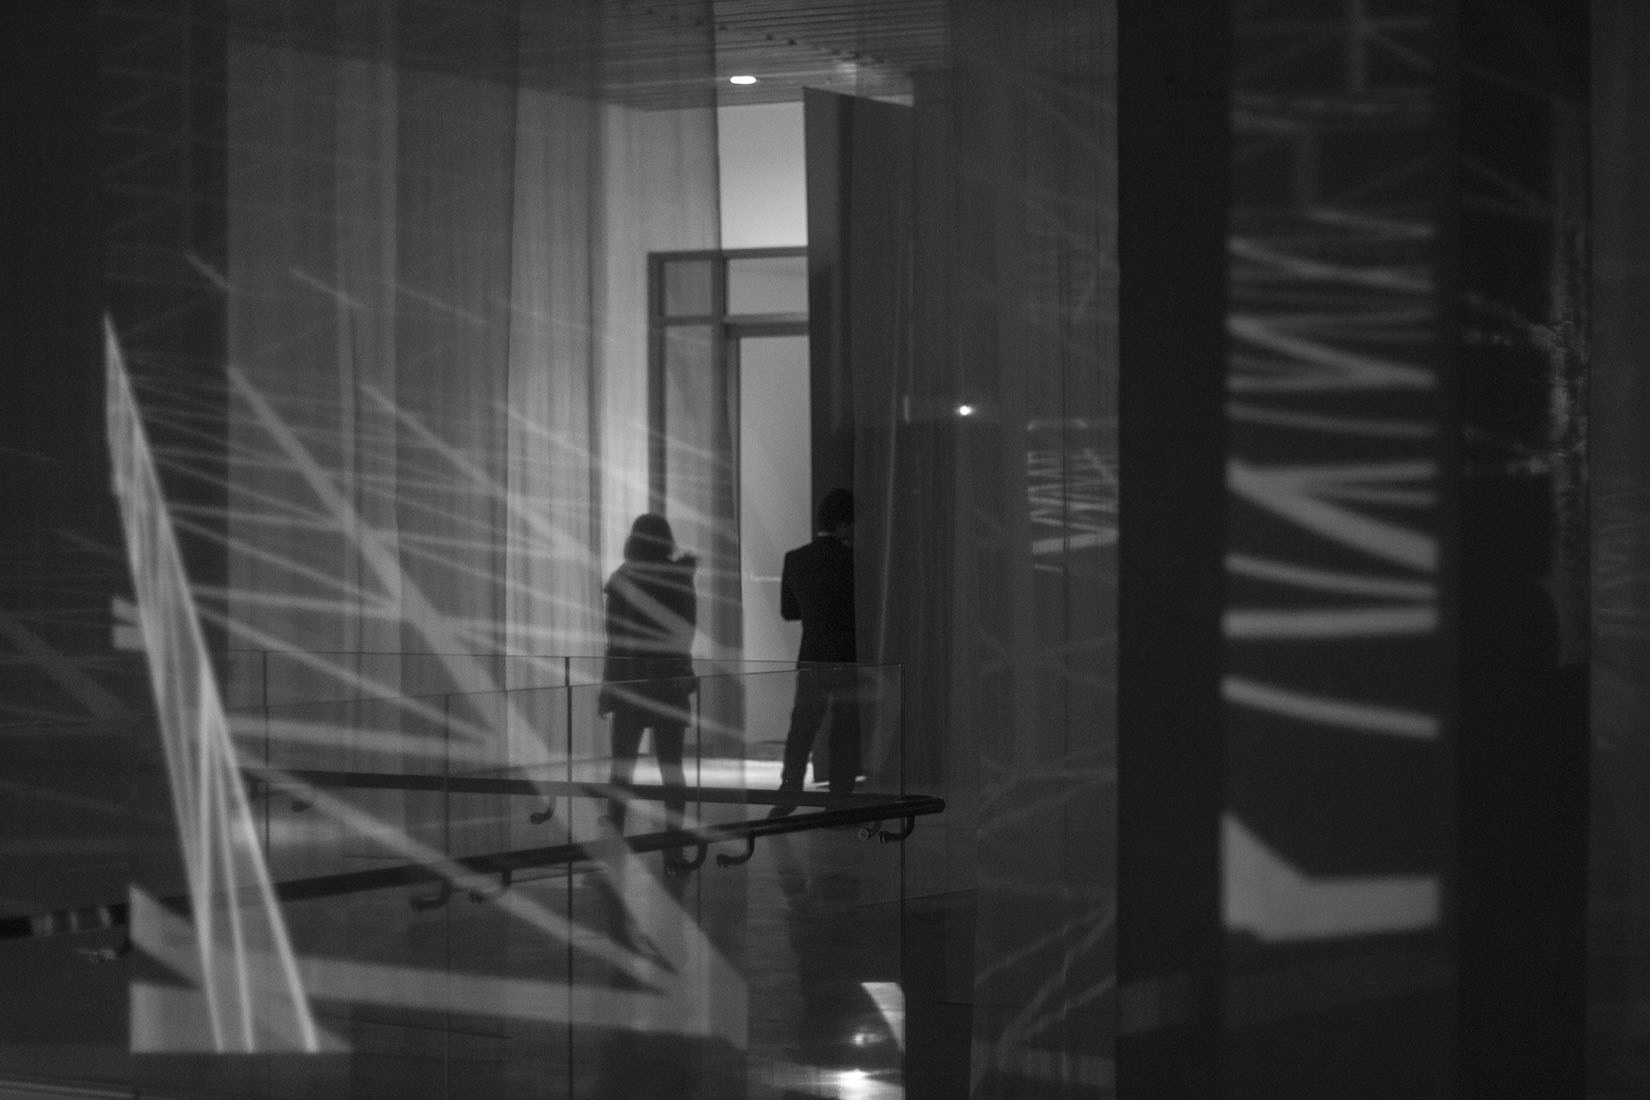 Silhouette of young woman, projection in space, lines, 3d, light and shadow, architecture, museum, photography